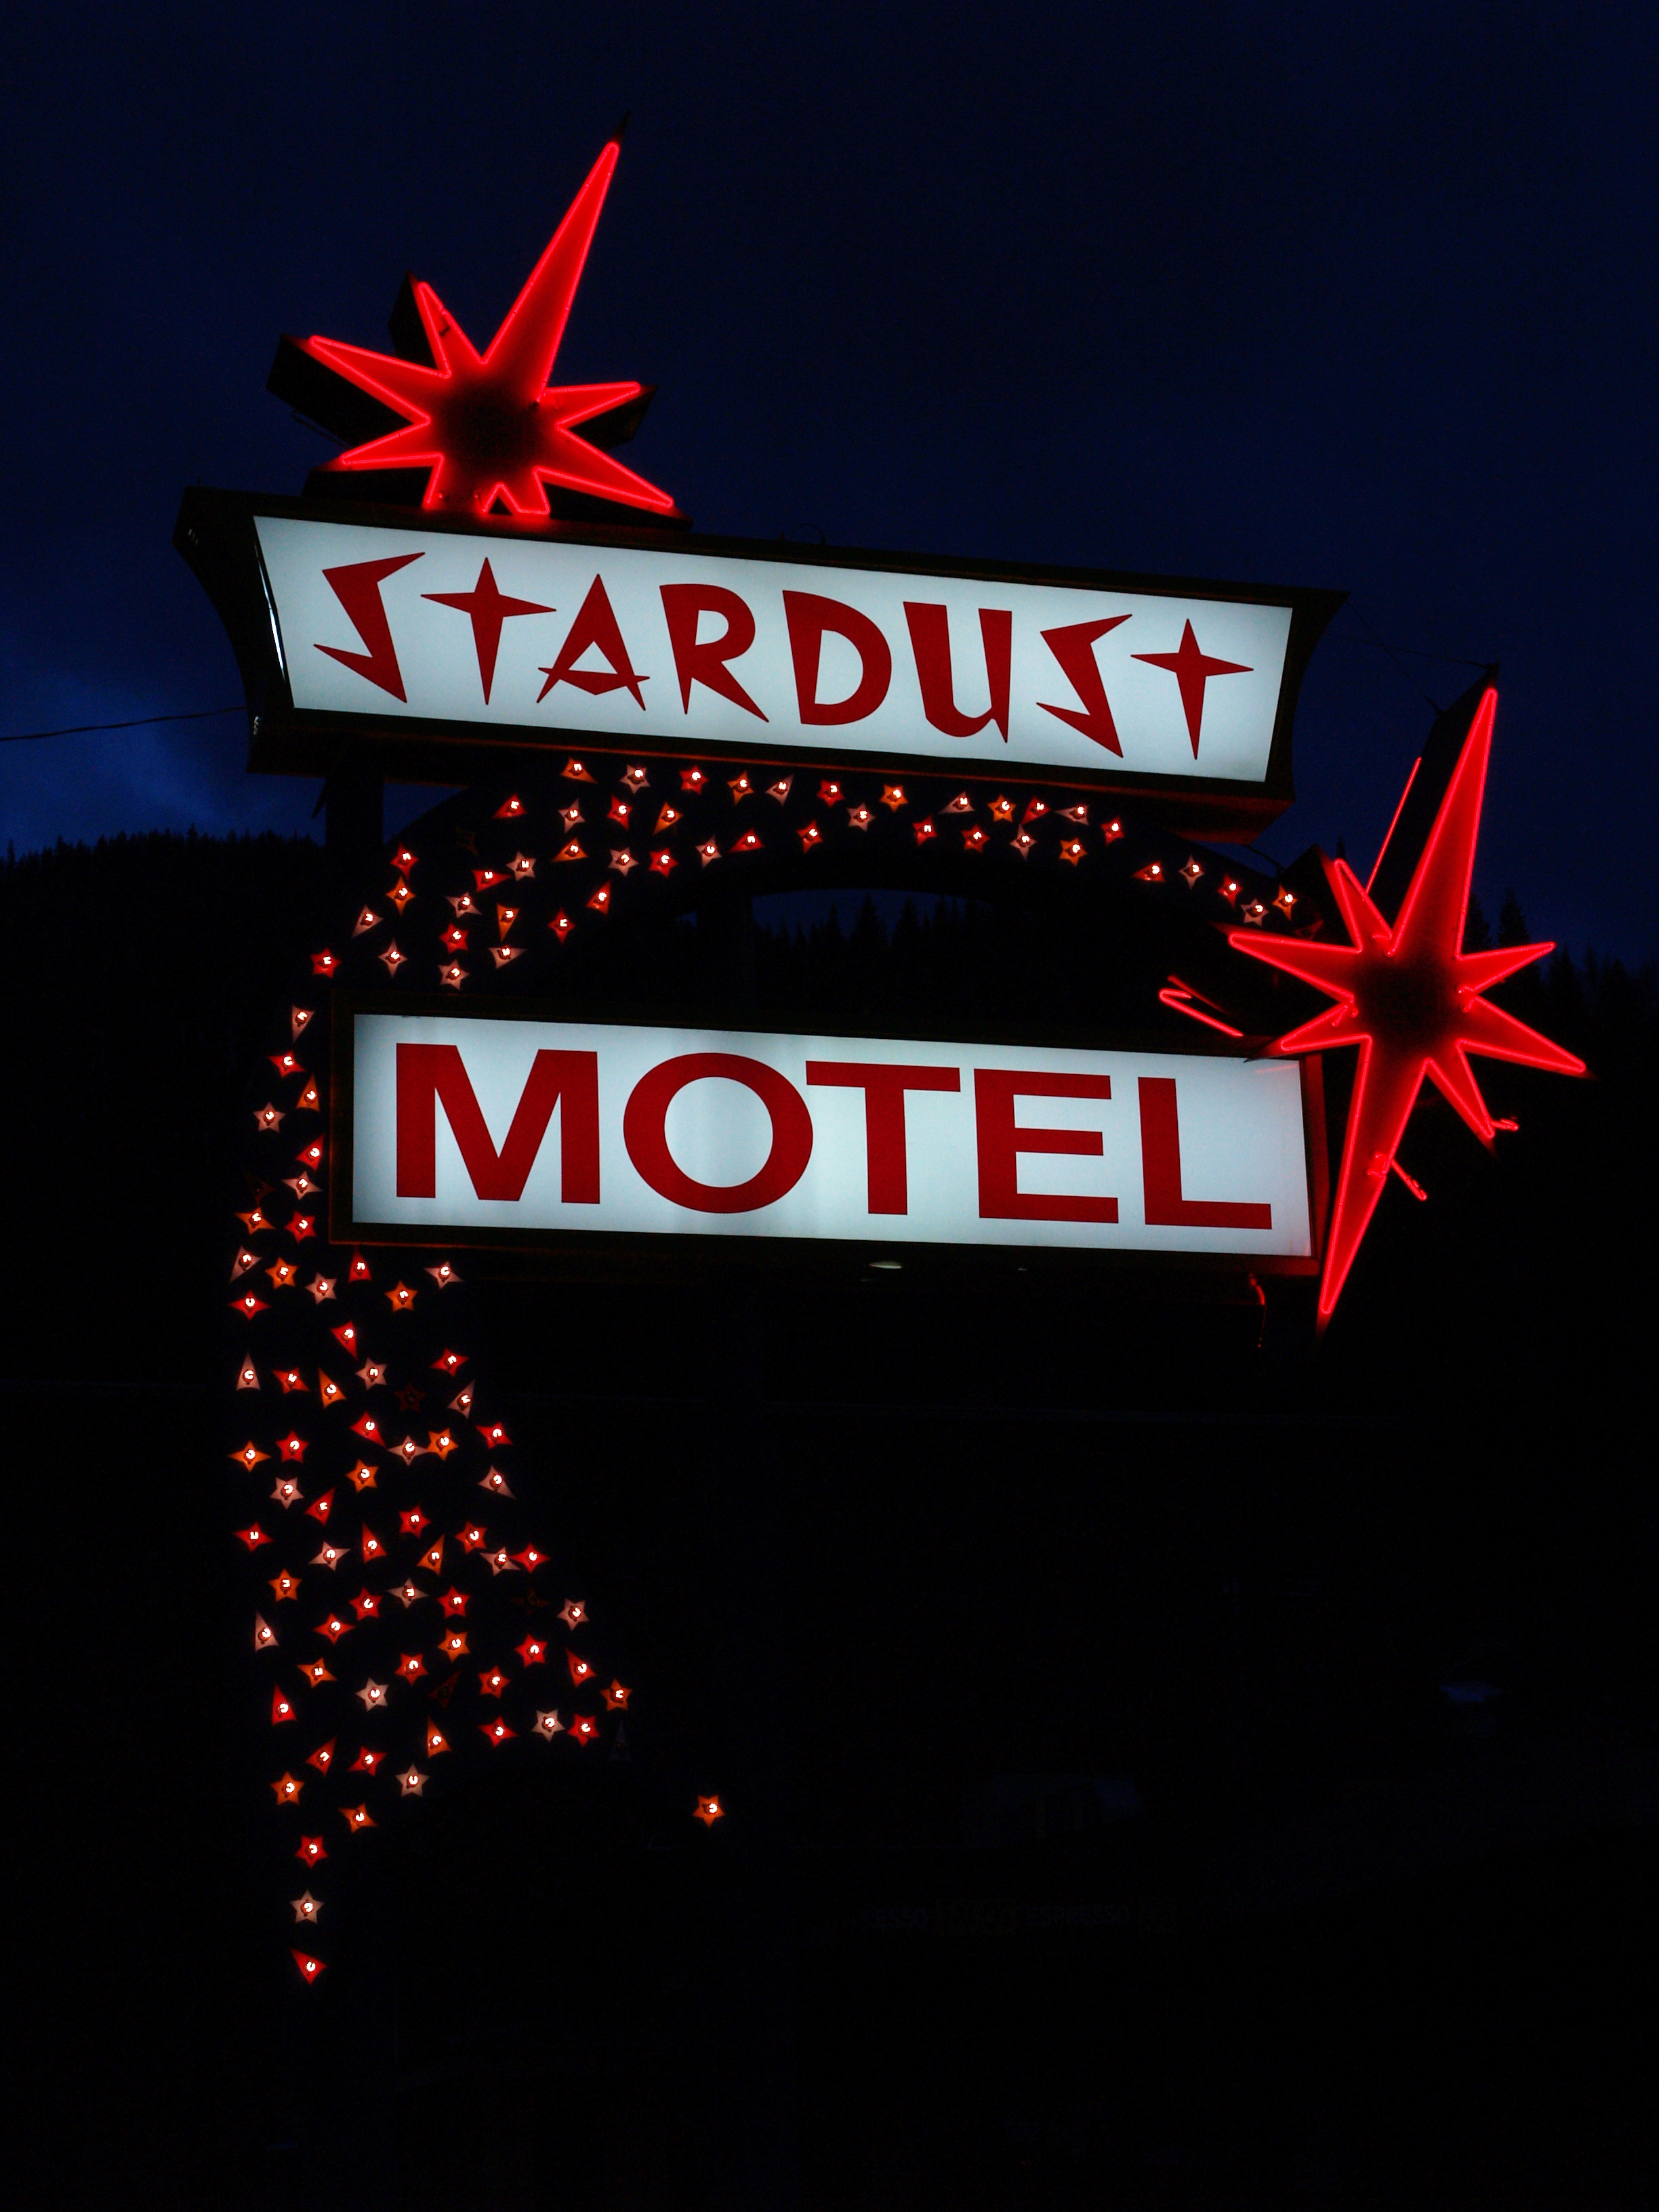 Stardust Motel - 410 Pine Street, Wallace, Idaho U.S.A. - March 17, 2008